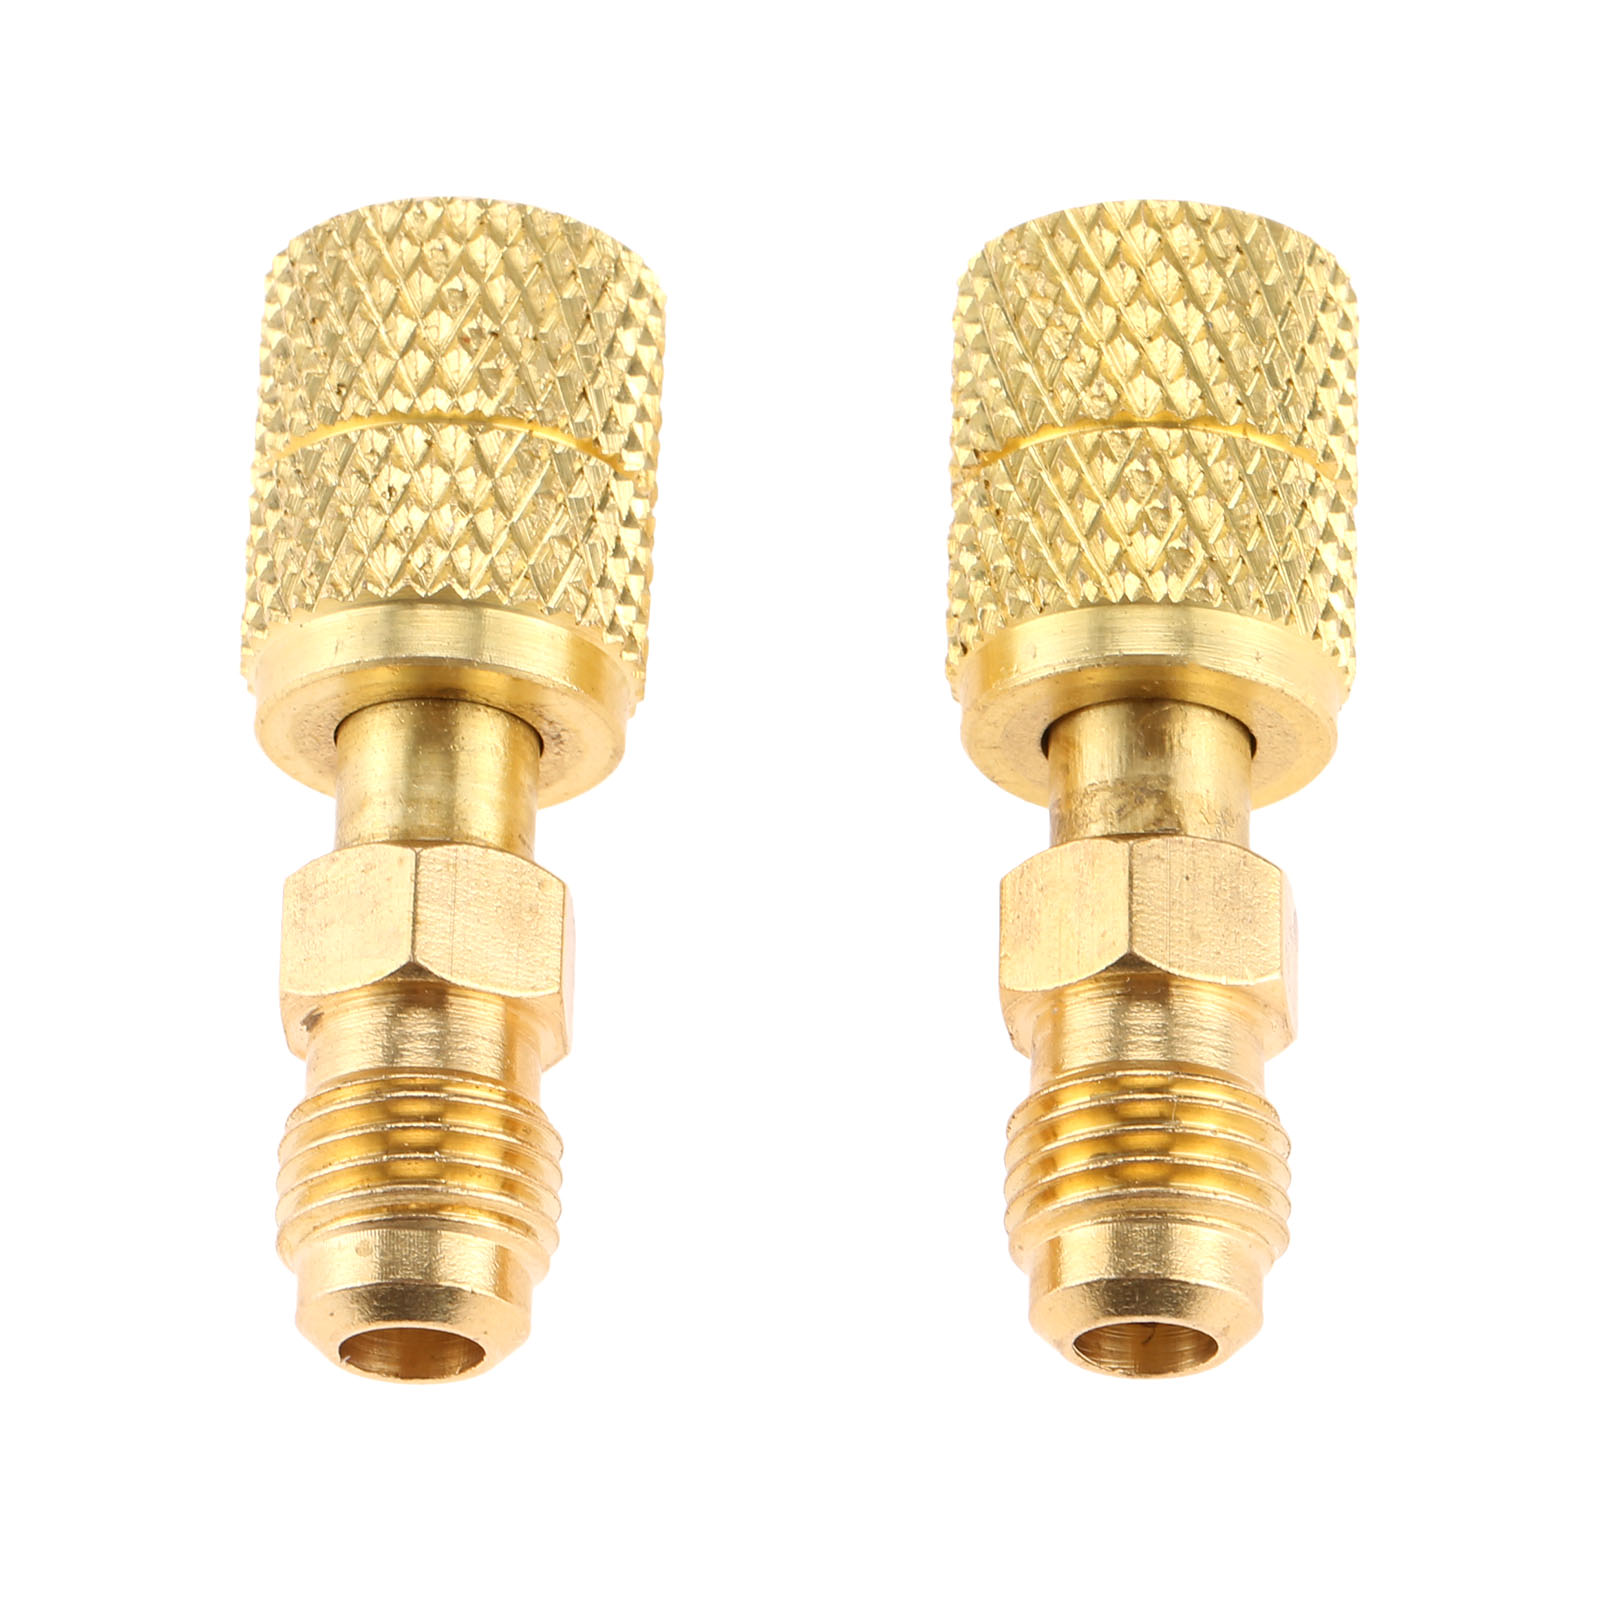 2 PCS R410A 1//4SAE To 5//16 Refrigeration Adapter Connector Adaptor For R410a Gauges Hose Air Condition Connector